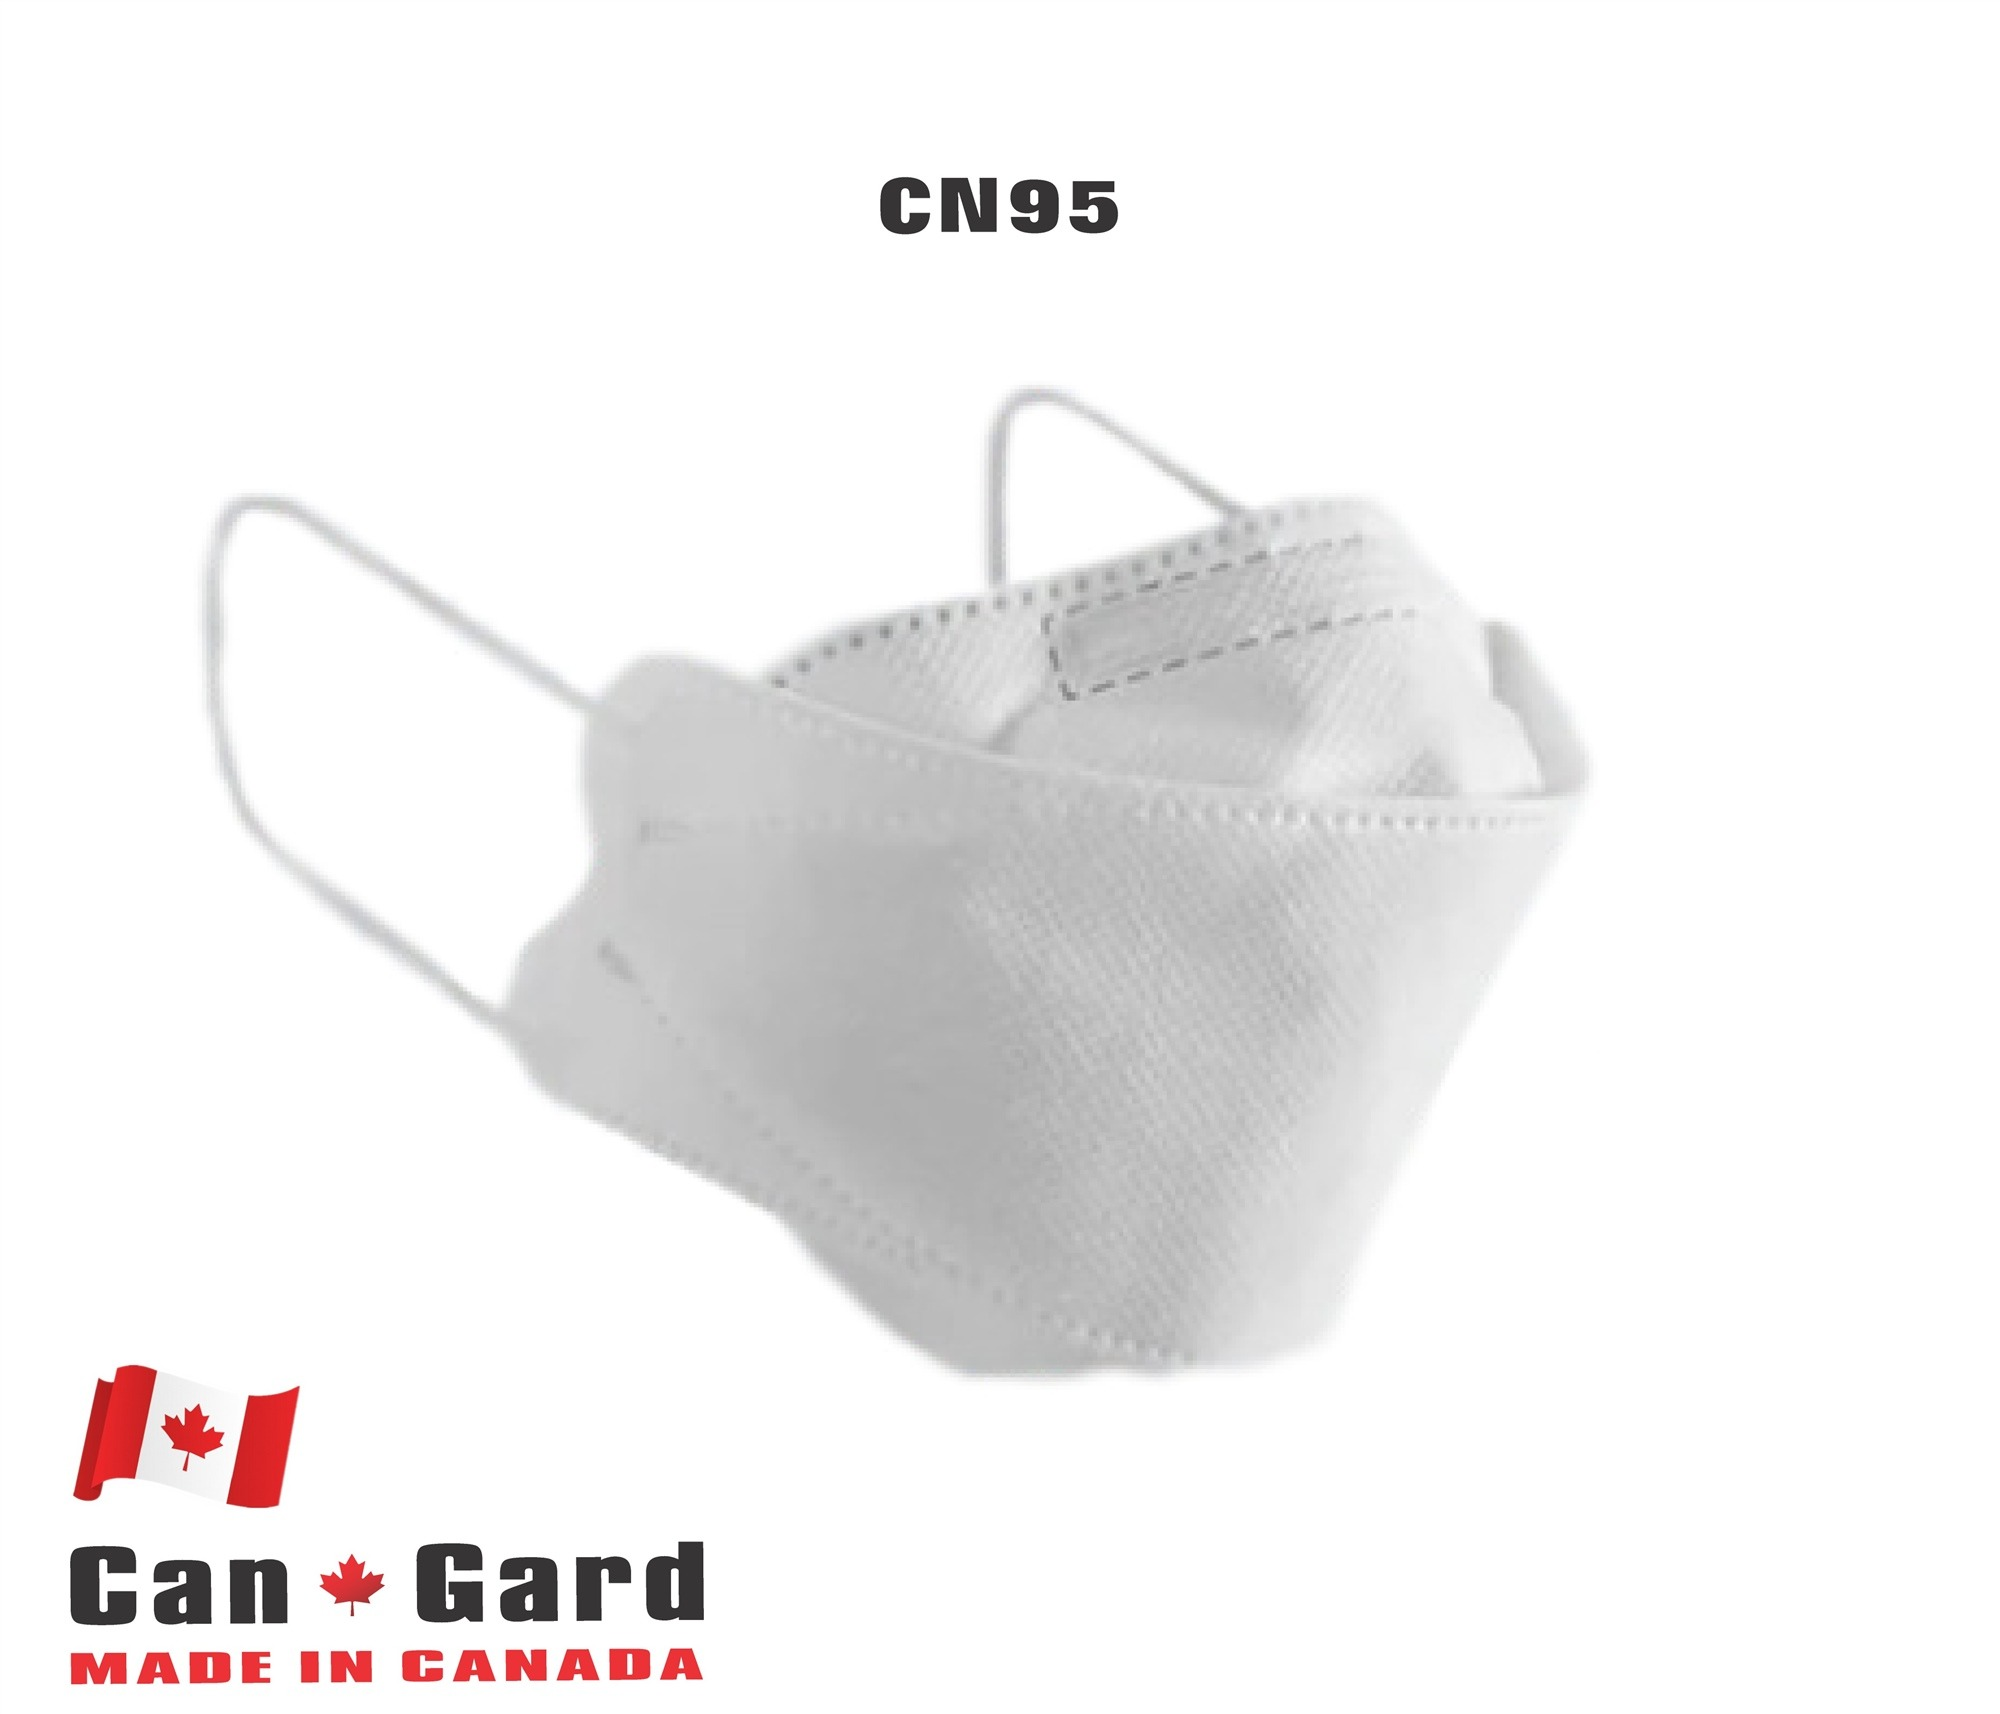 What is a CN95 Mask?